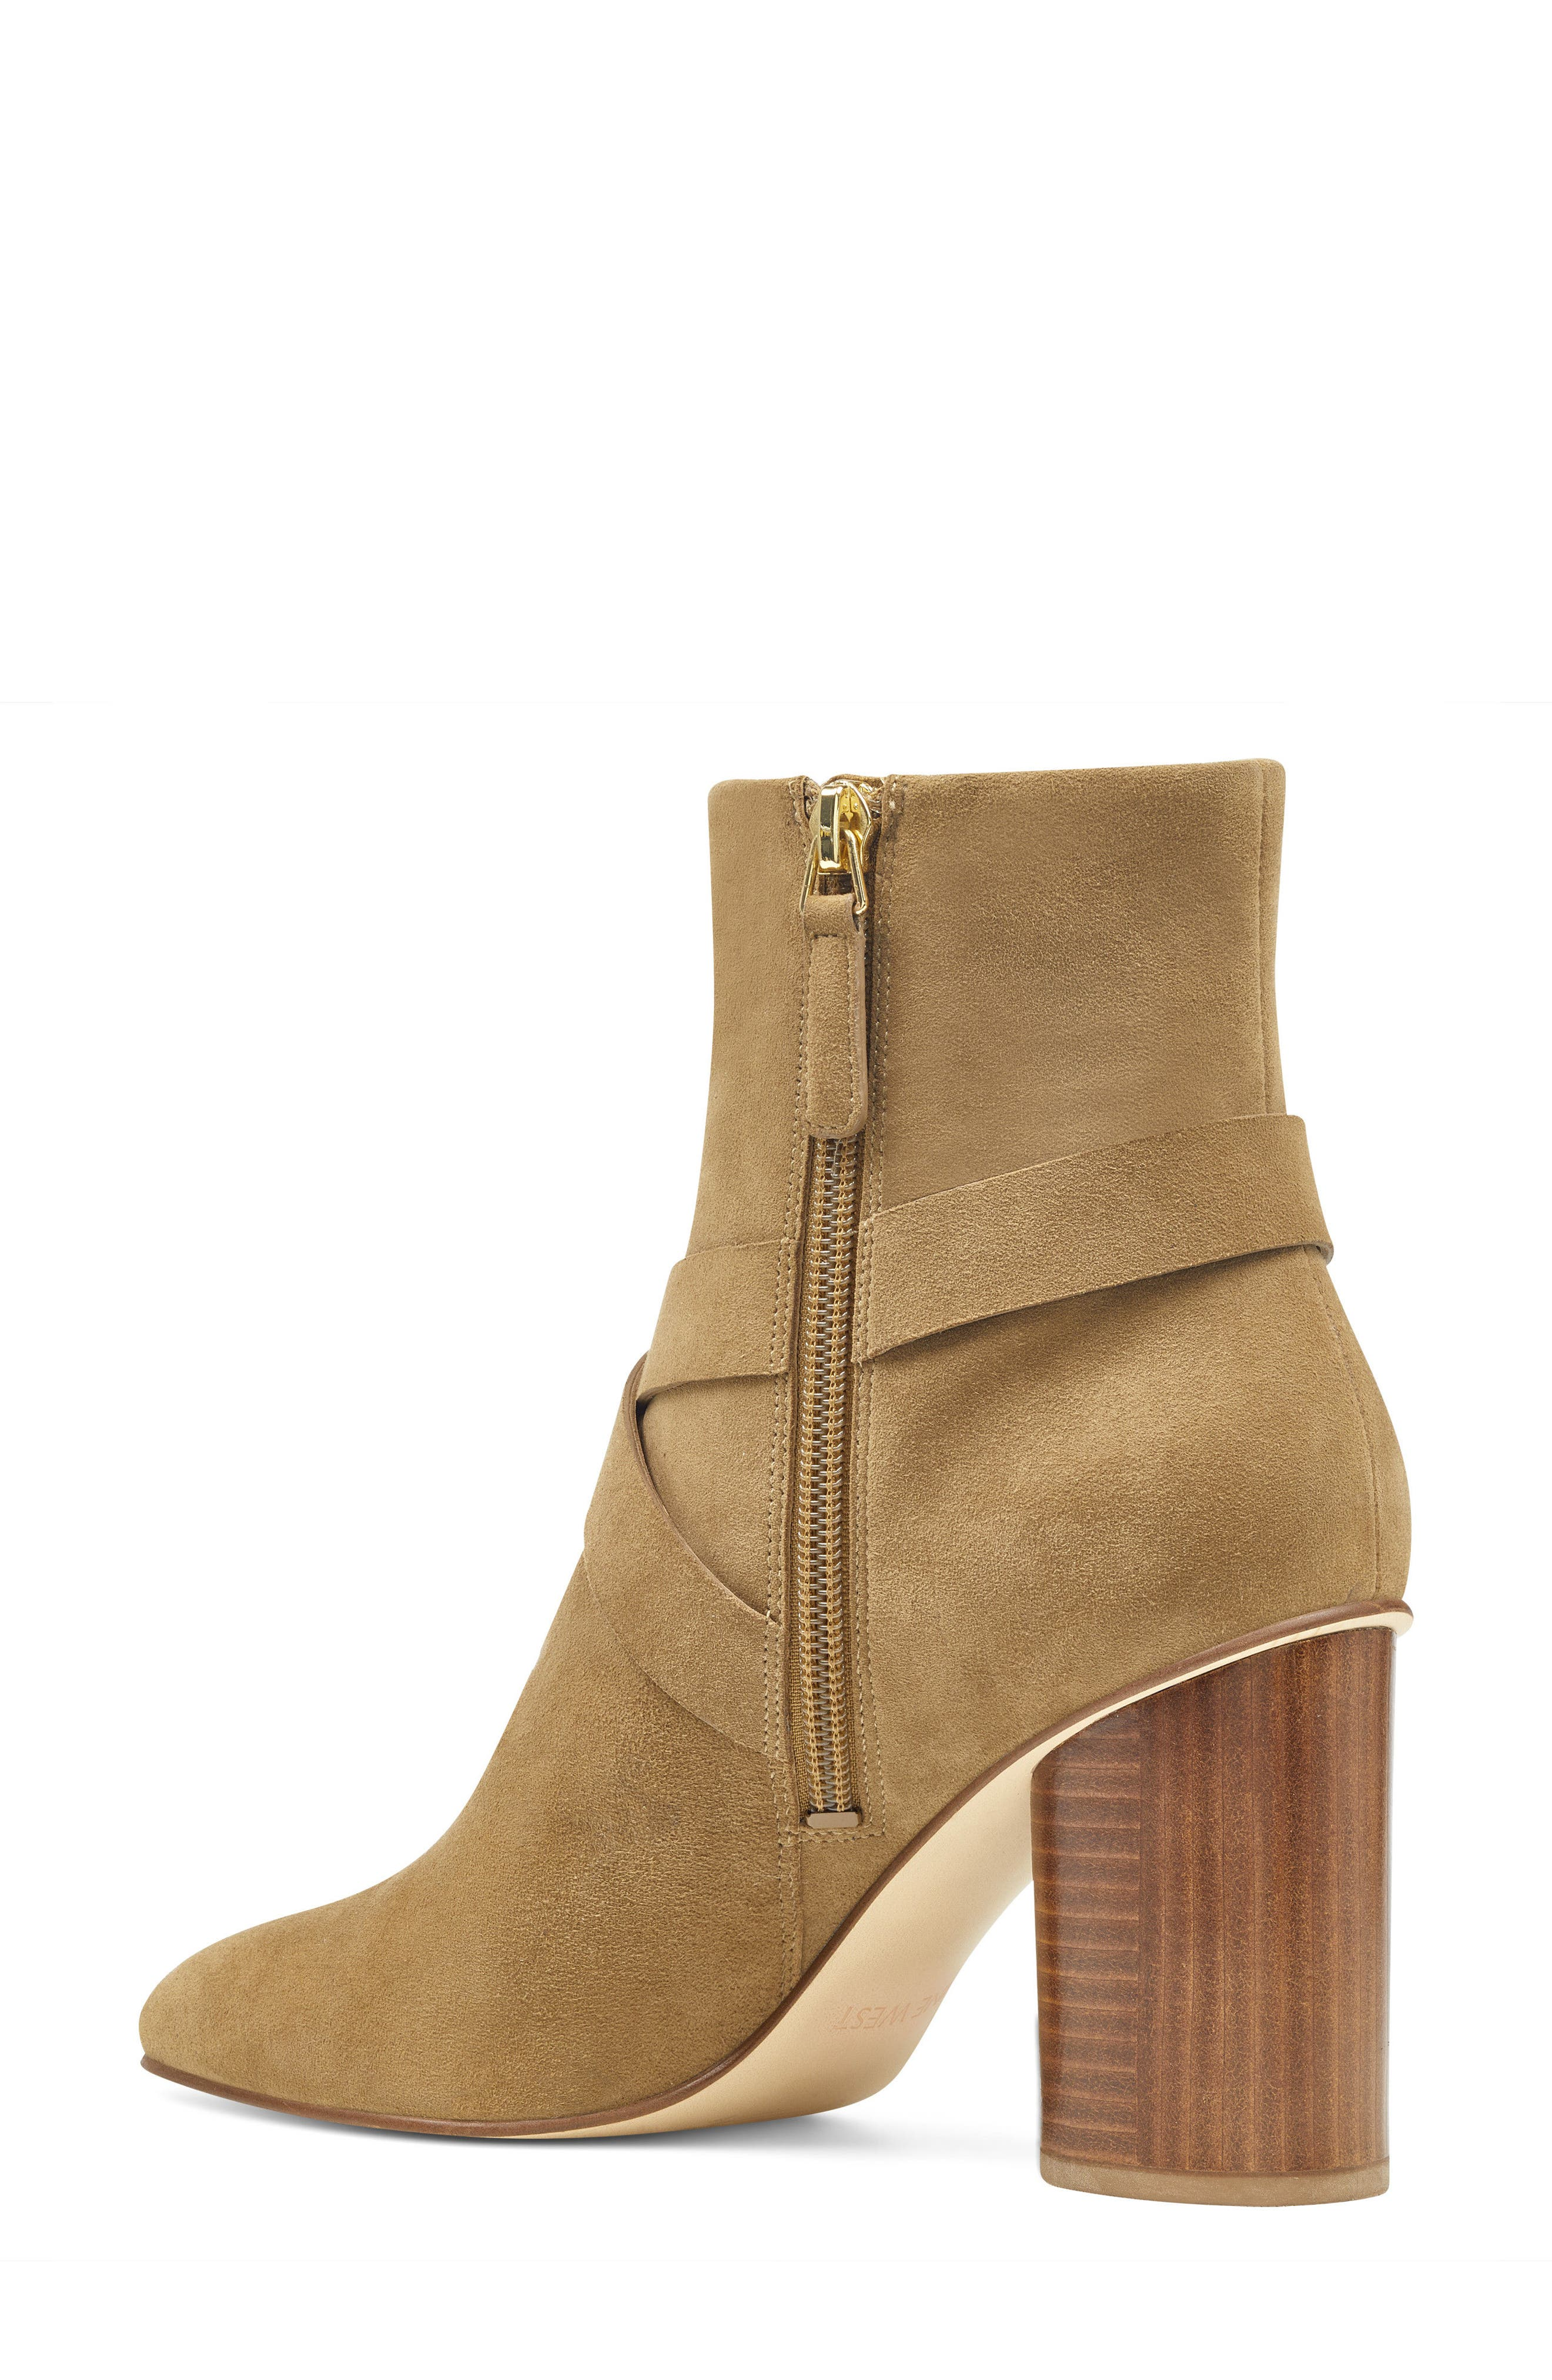 Cavanagh Pointy Toe Bootie,                             Alternate thumbnail 2, color,                             Green Suede